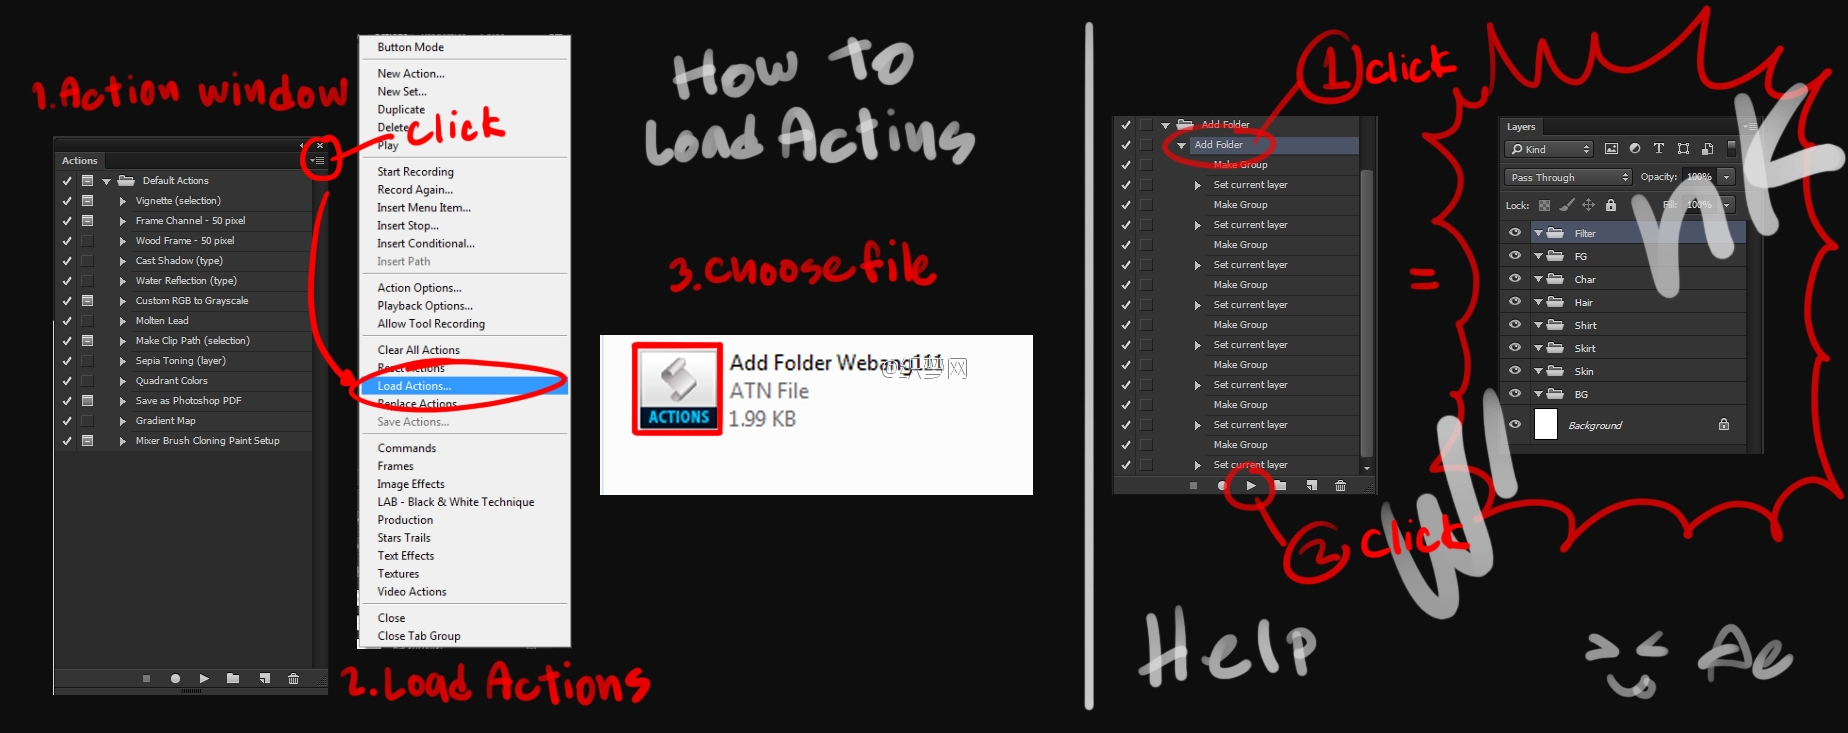 how to load Actions and use.jpg